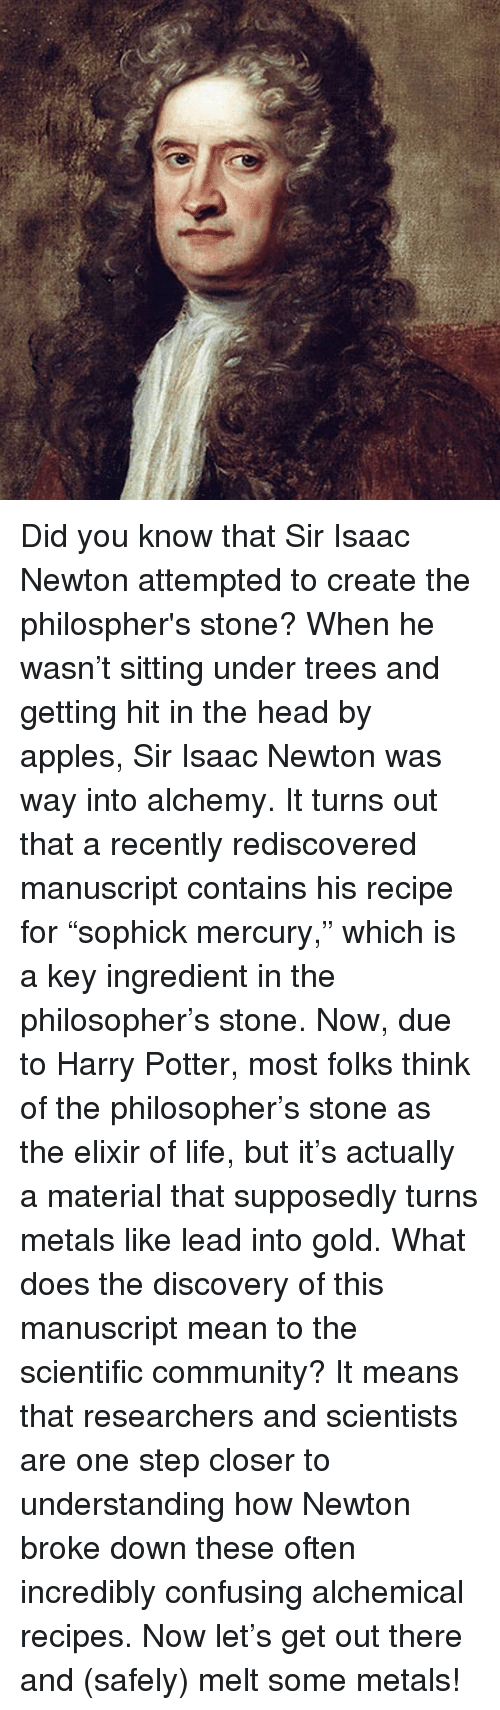 "Apple, Memes, and Appl: Did you know that Sir Isaac Newton attempted to create the philospher's stone? When he wasn't sitting under trees and getting hit in the head by apples, Sir Isaac Newton was way into alchemy. It turns out that a recently rediscovered manuscript contains his recipe for ""sophick mercury,"" which is a key ingredient in the philosopher's stone. Now, due to Harry Potter, most folks think of the philosopher's stone as the elixir of life, but it's actually a material that supposedly turns metals like lead into gold. What does the discovery of this manuscript mean to the scientific community? It means that researchers and scientists are one step closer to understanding how Newton broke down these often incredibly confusing alchemical recipes. Now let's get out there and (safely) melt some metals!"